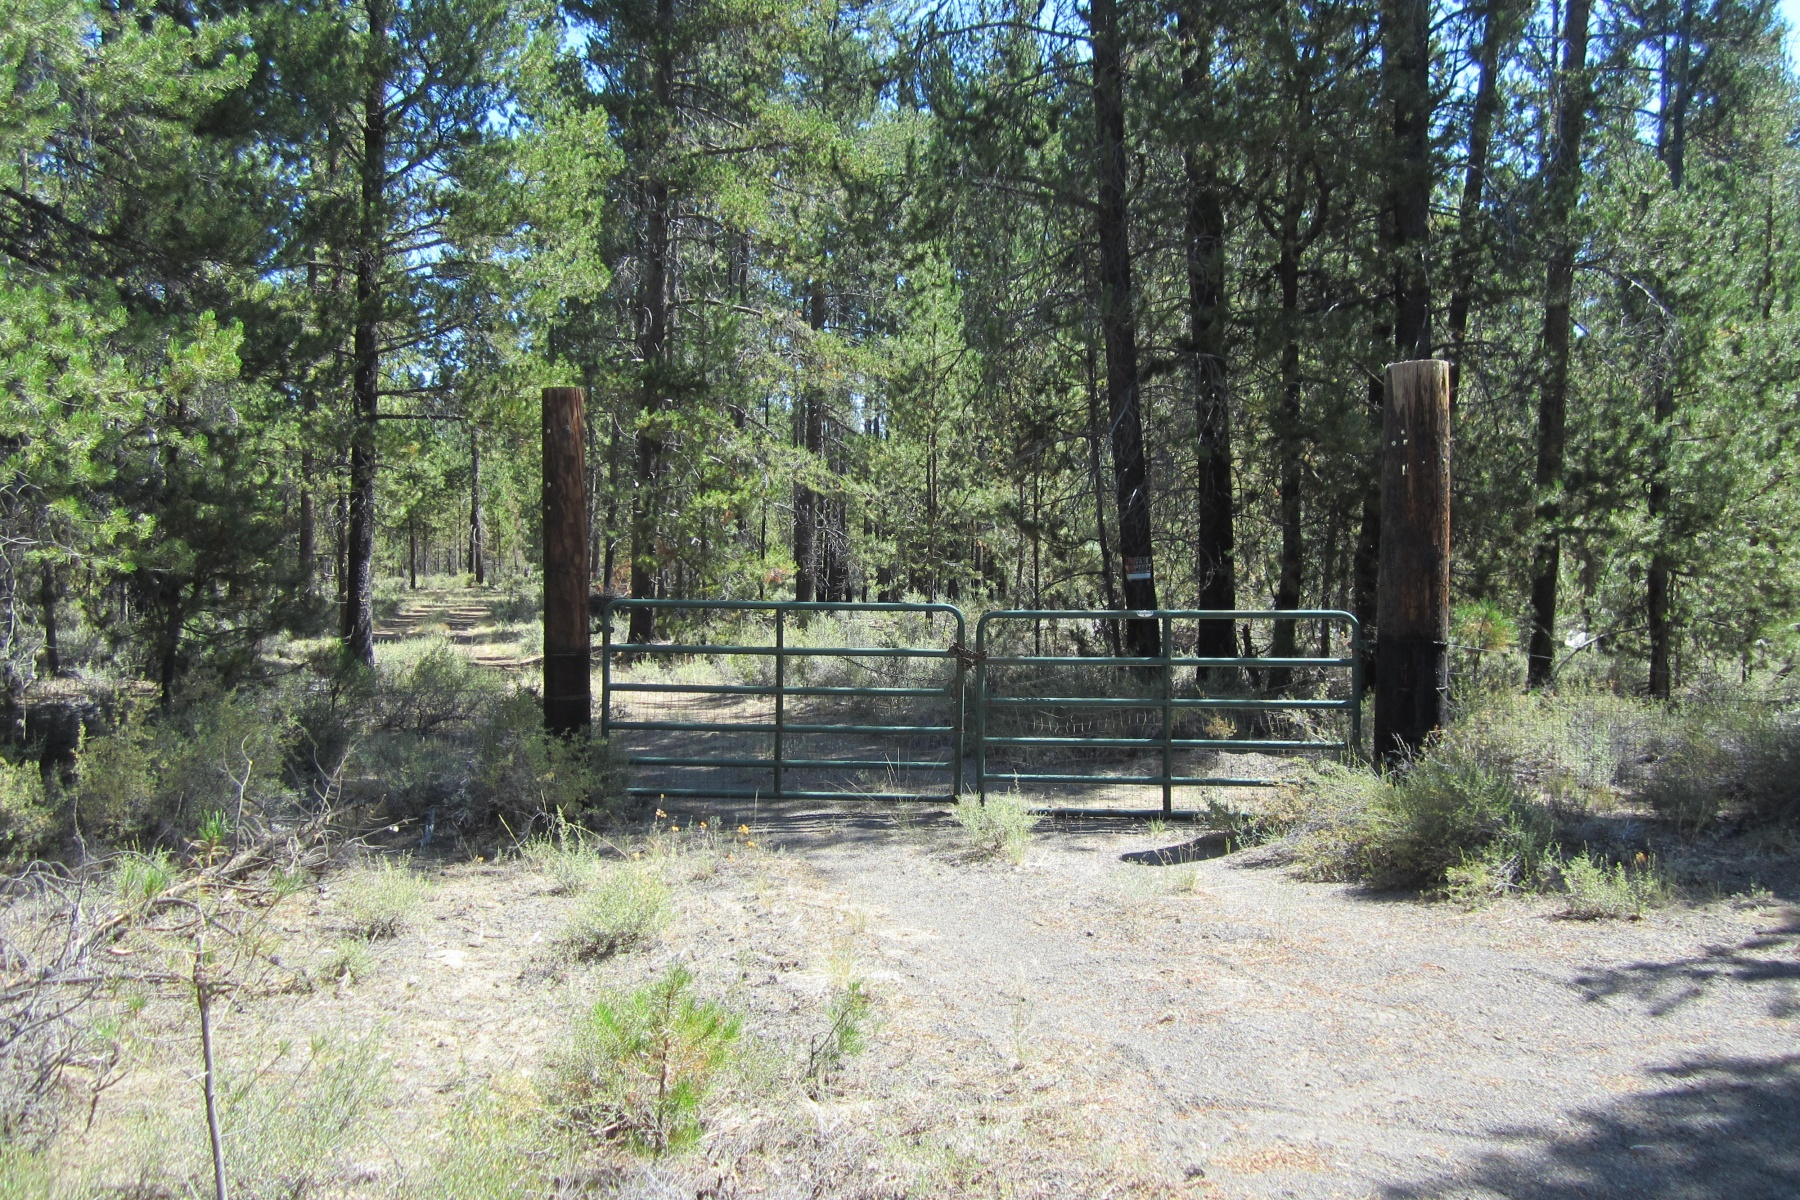 Terreno por un Venta en Beautiful 30 Acre Building Site 0 Aqua Rd Lot 00300 La Pine, Oregon, 97739 Estados Unidos